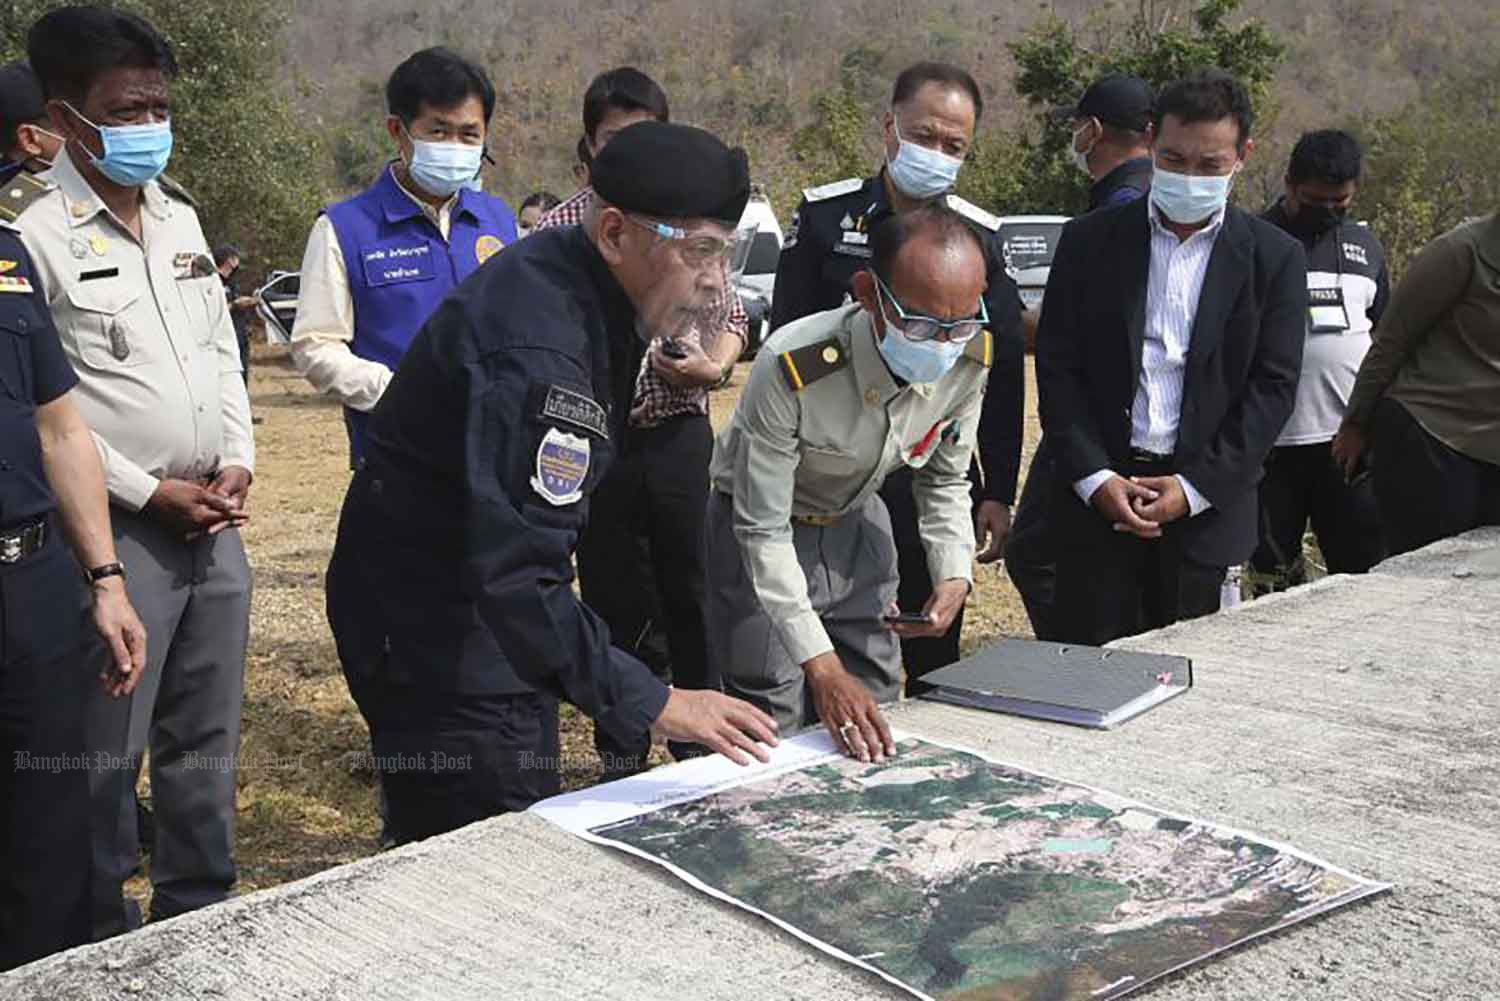 DSI director-general Korawat Panprapakorn, centre, inspects the site supposedly to be used for the Phetchaburi Park project in Phetchaburi province, in February. (Photo: Pattarapong Chatpattarasill)